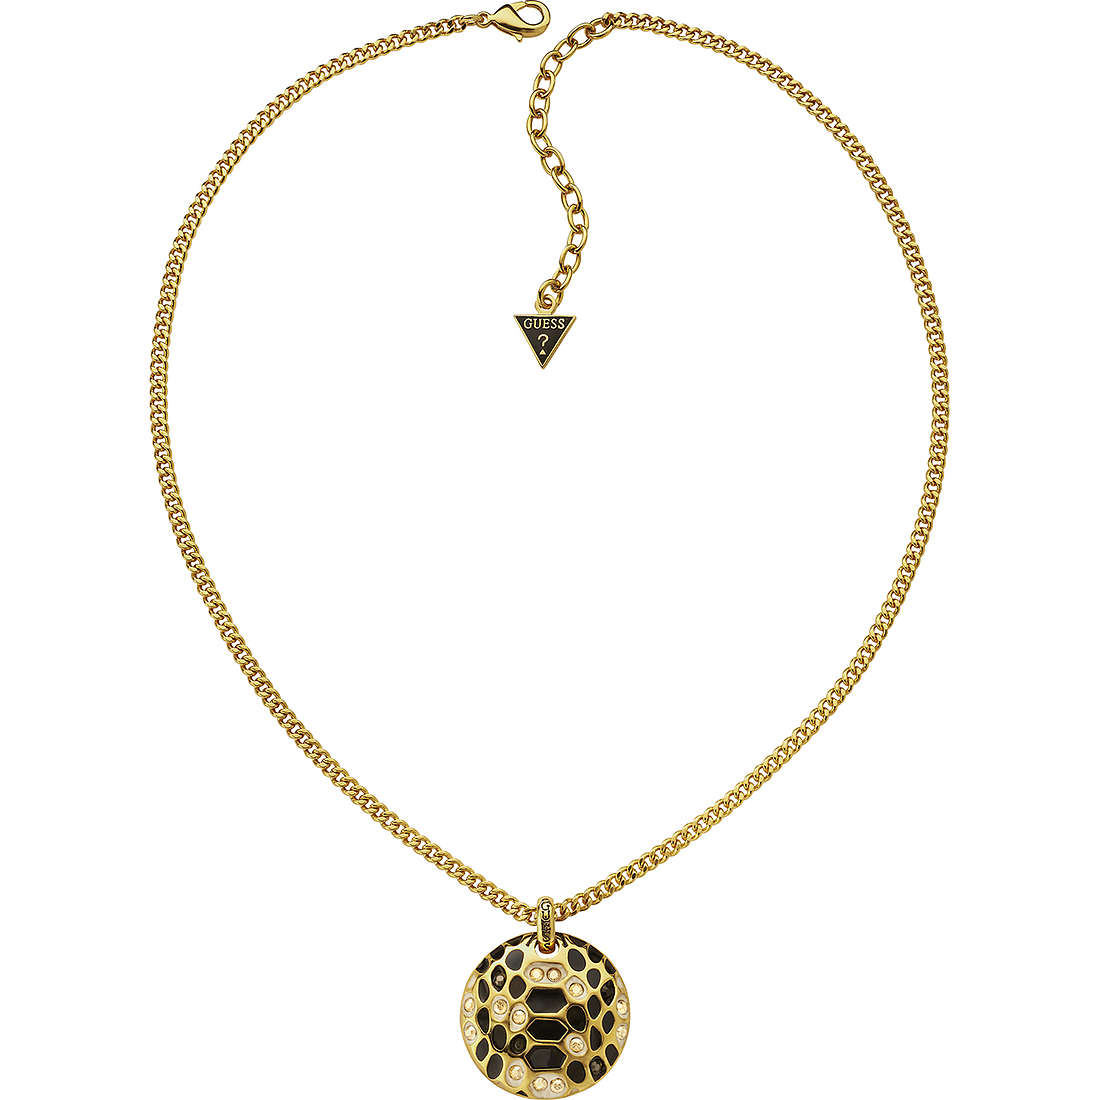 necklace woman jewellery Guess Settembre 2013 UBN91323